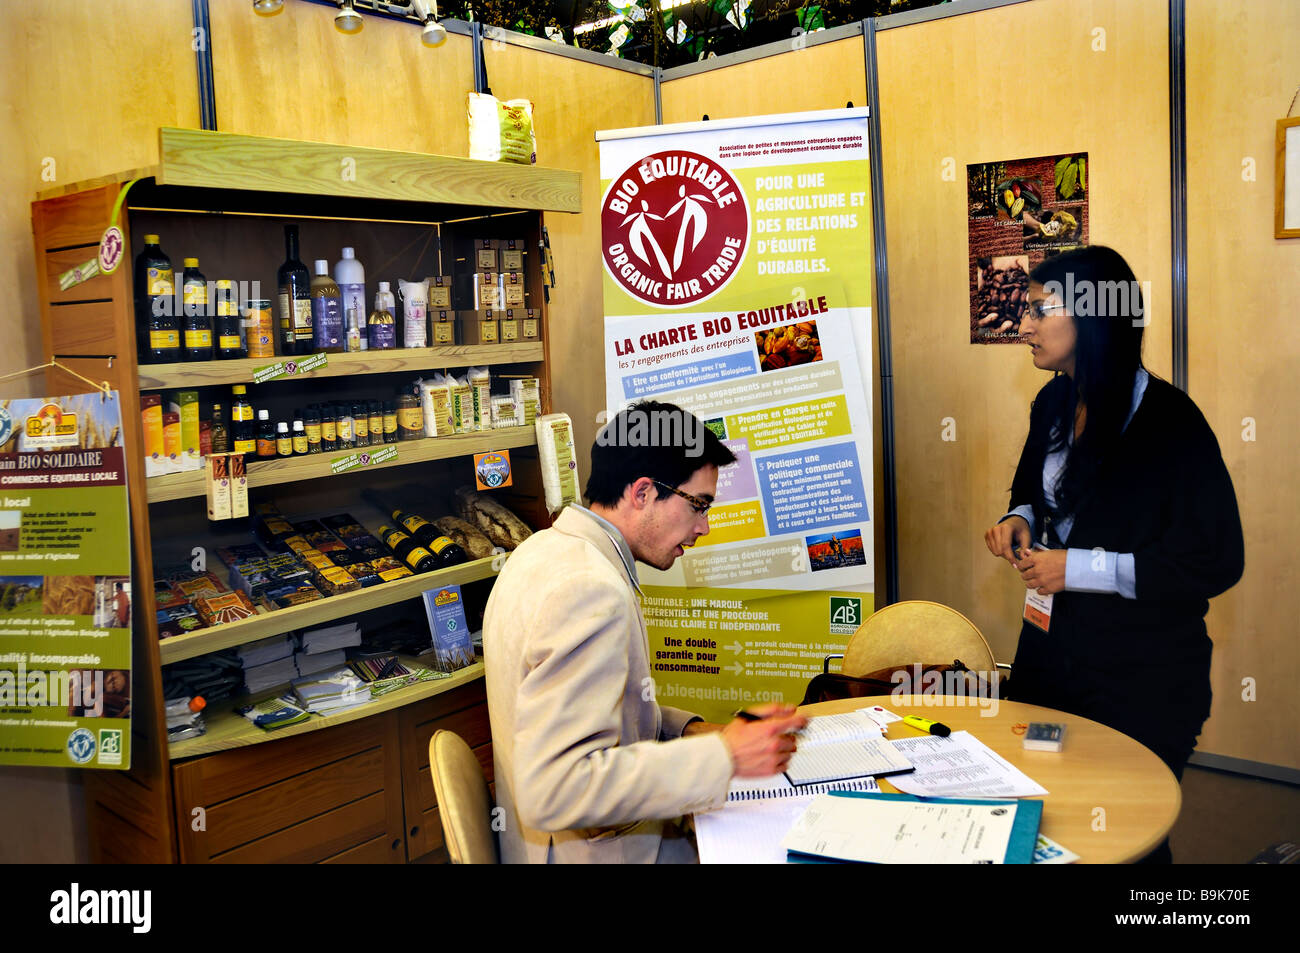 PARIS, FRANCE, Woman Speaking with Man at Organic Trade Show, Fair Trade of Group 'Equitable Commerce' Companies - Stock Image